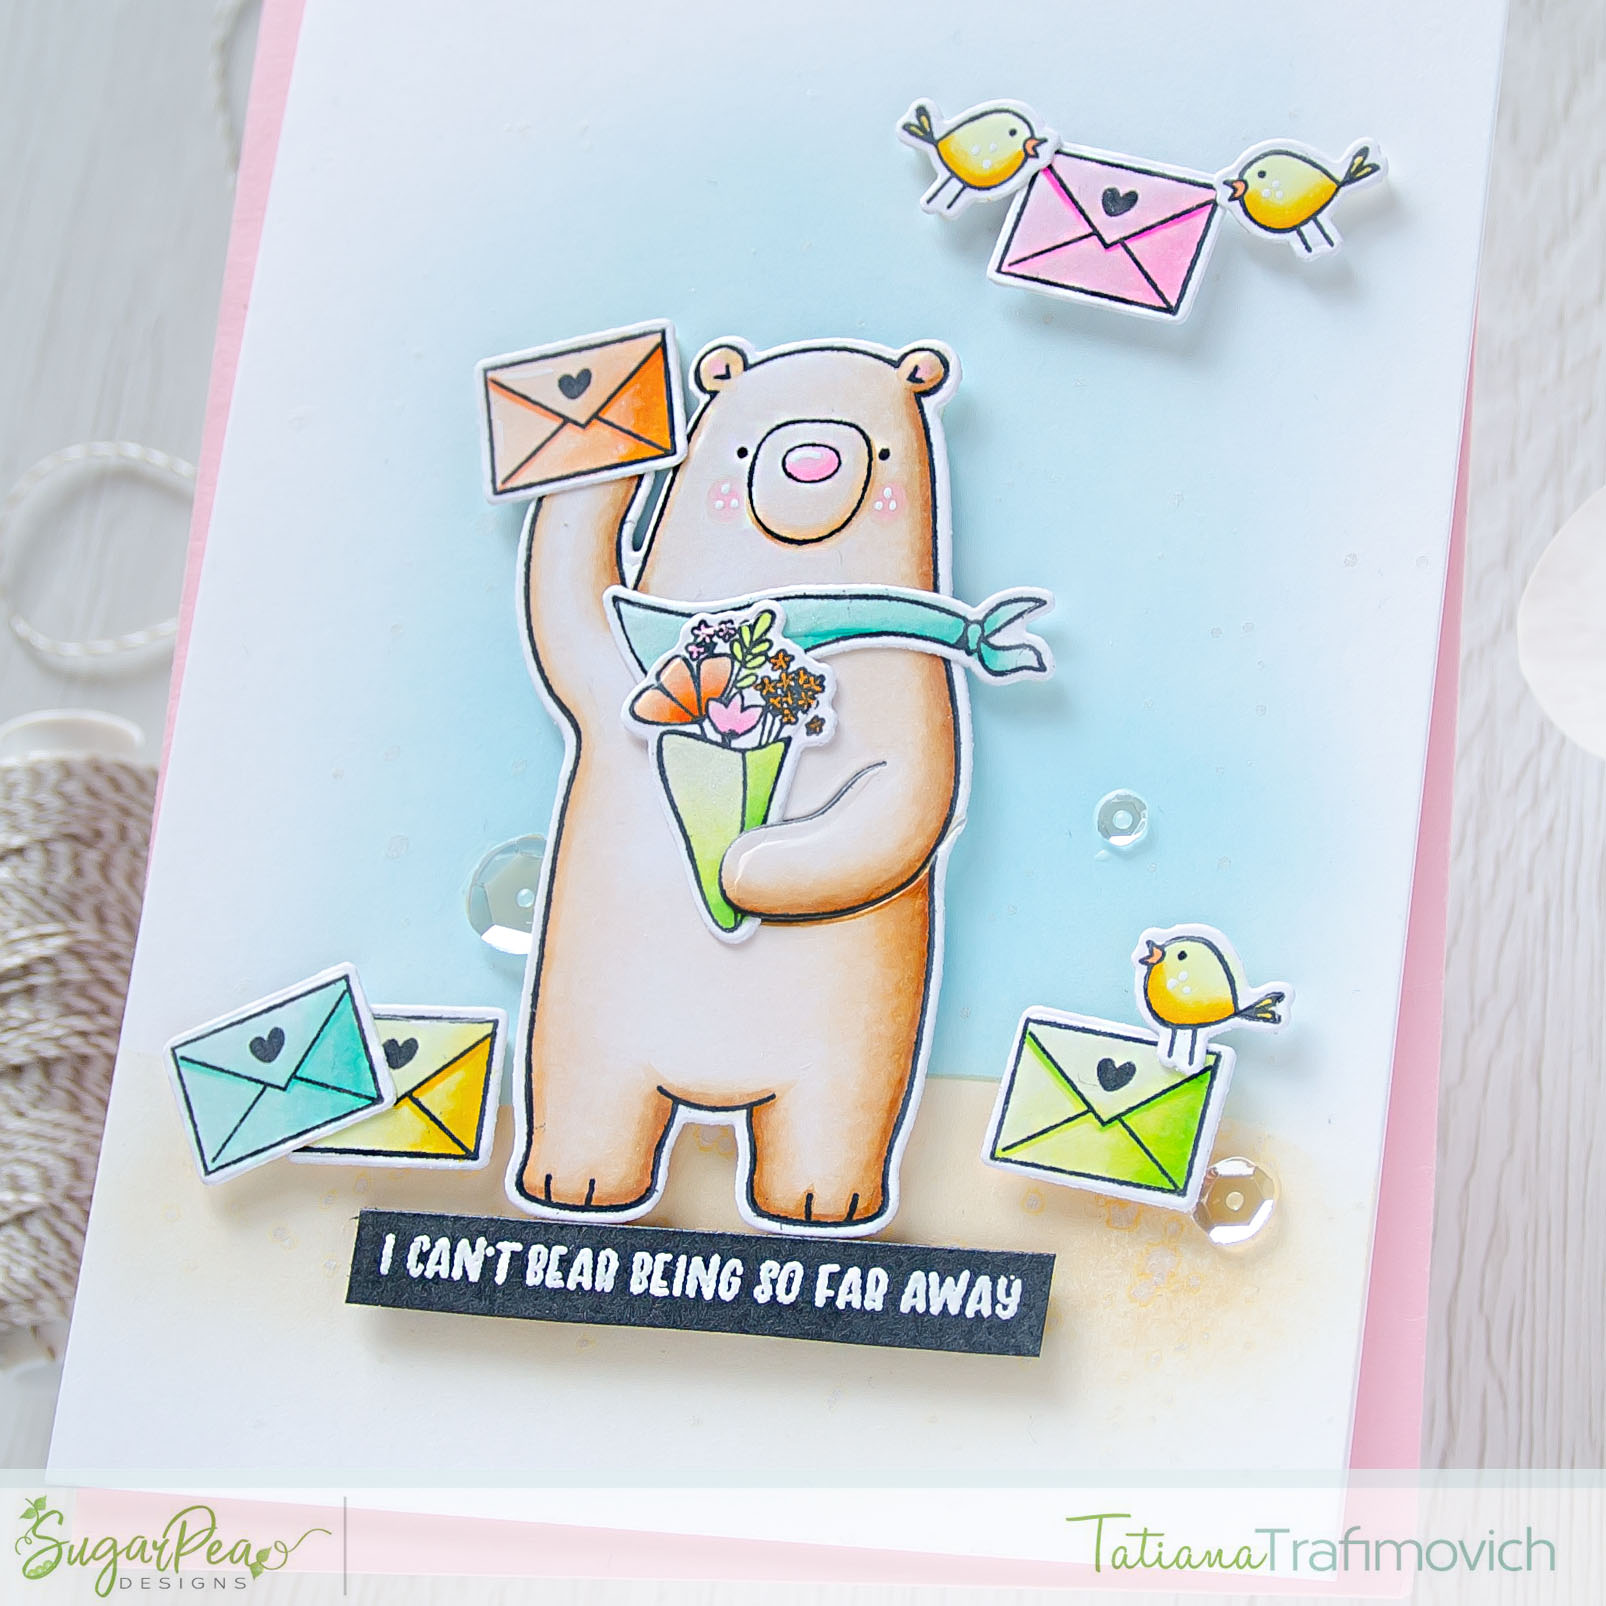 I Can't Bear Being So Far Away #handmade card by Tatiana Trafimovich #tatianacraftandart - Hey Winter and Hey Summer stamp sets by SugarPea Designs #sugarpeadesigns